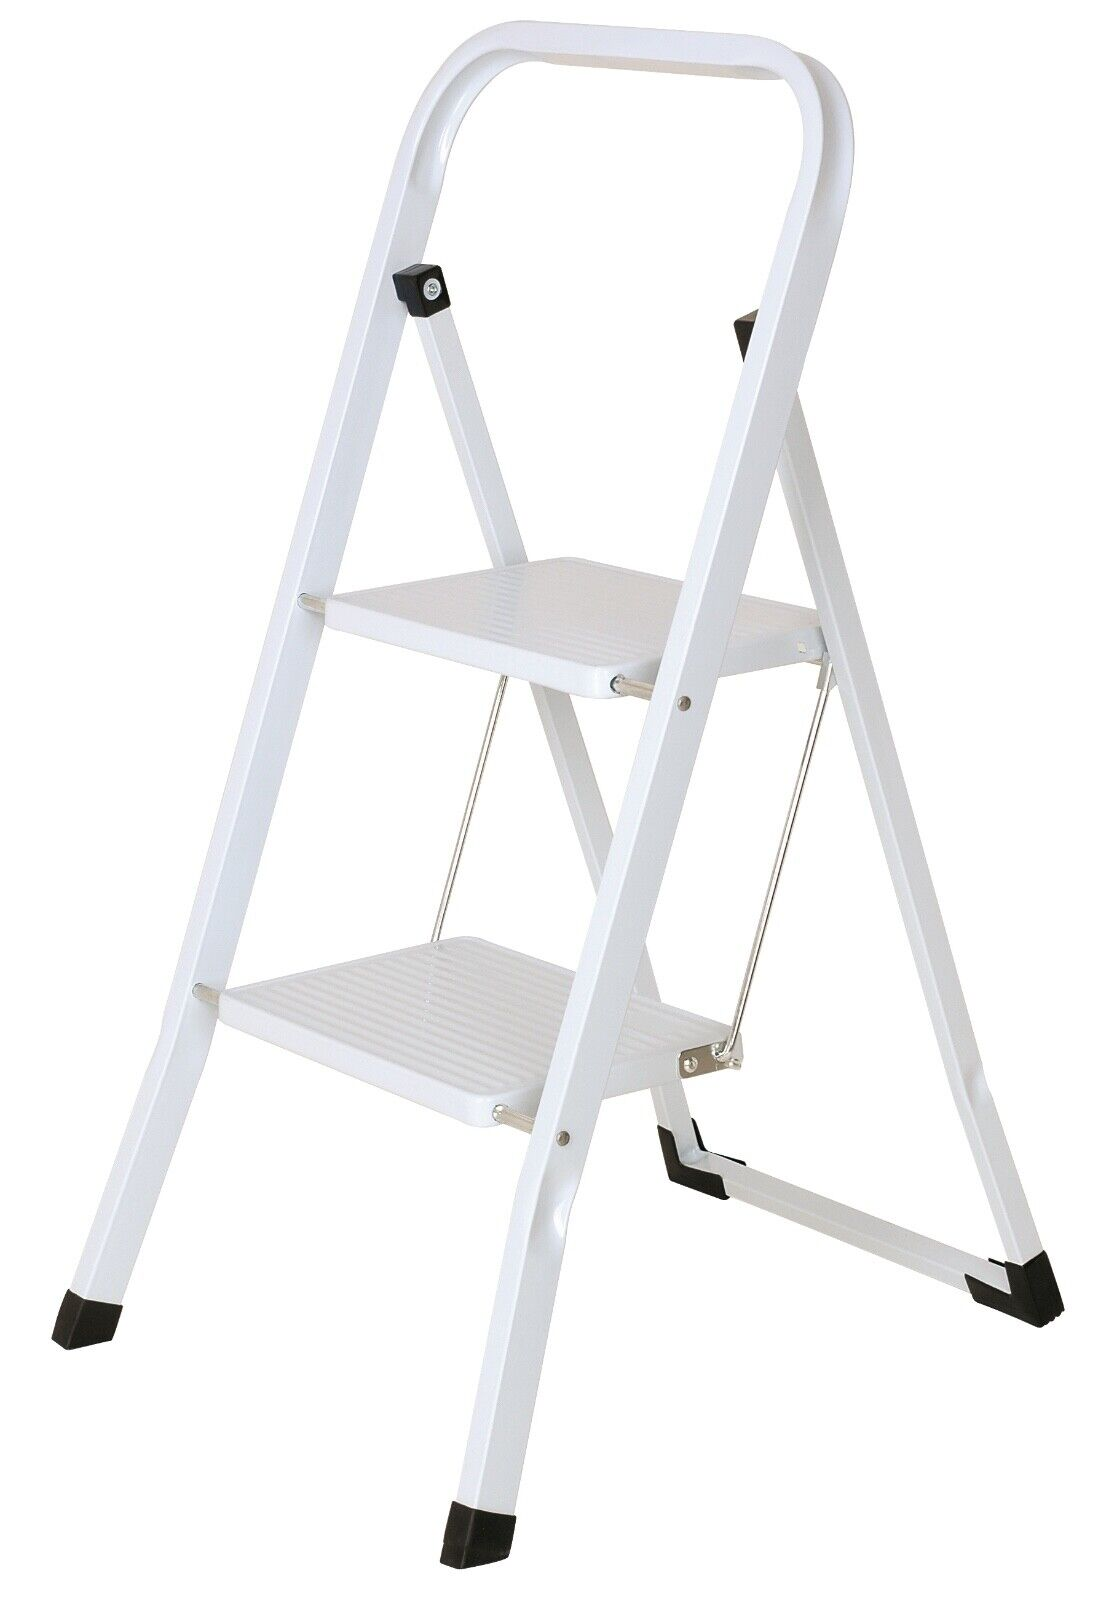 Foldable 2 Step Ladder Stepladder Non Slip Tread Safety Steel Step Home Kitchen